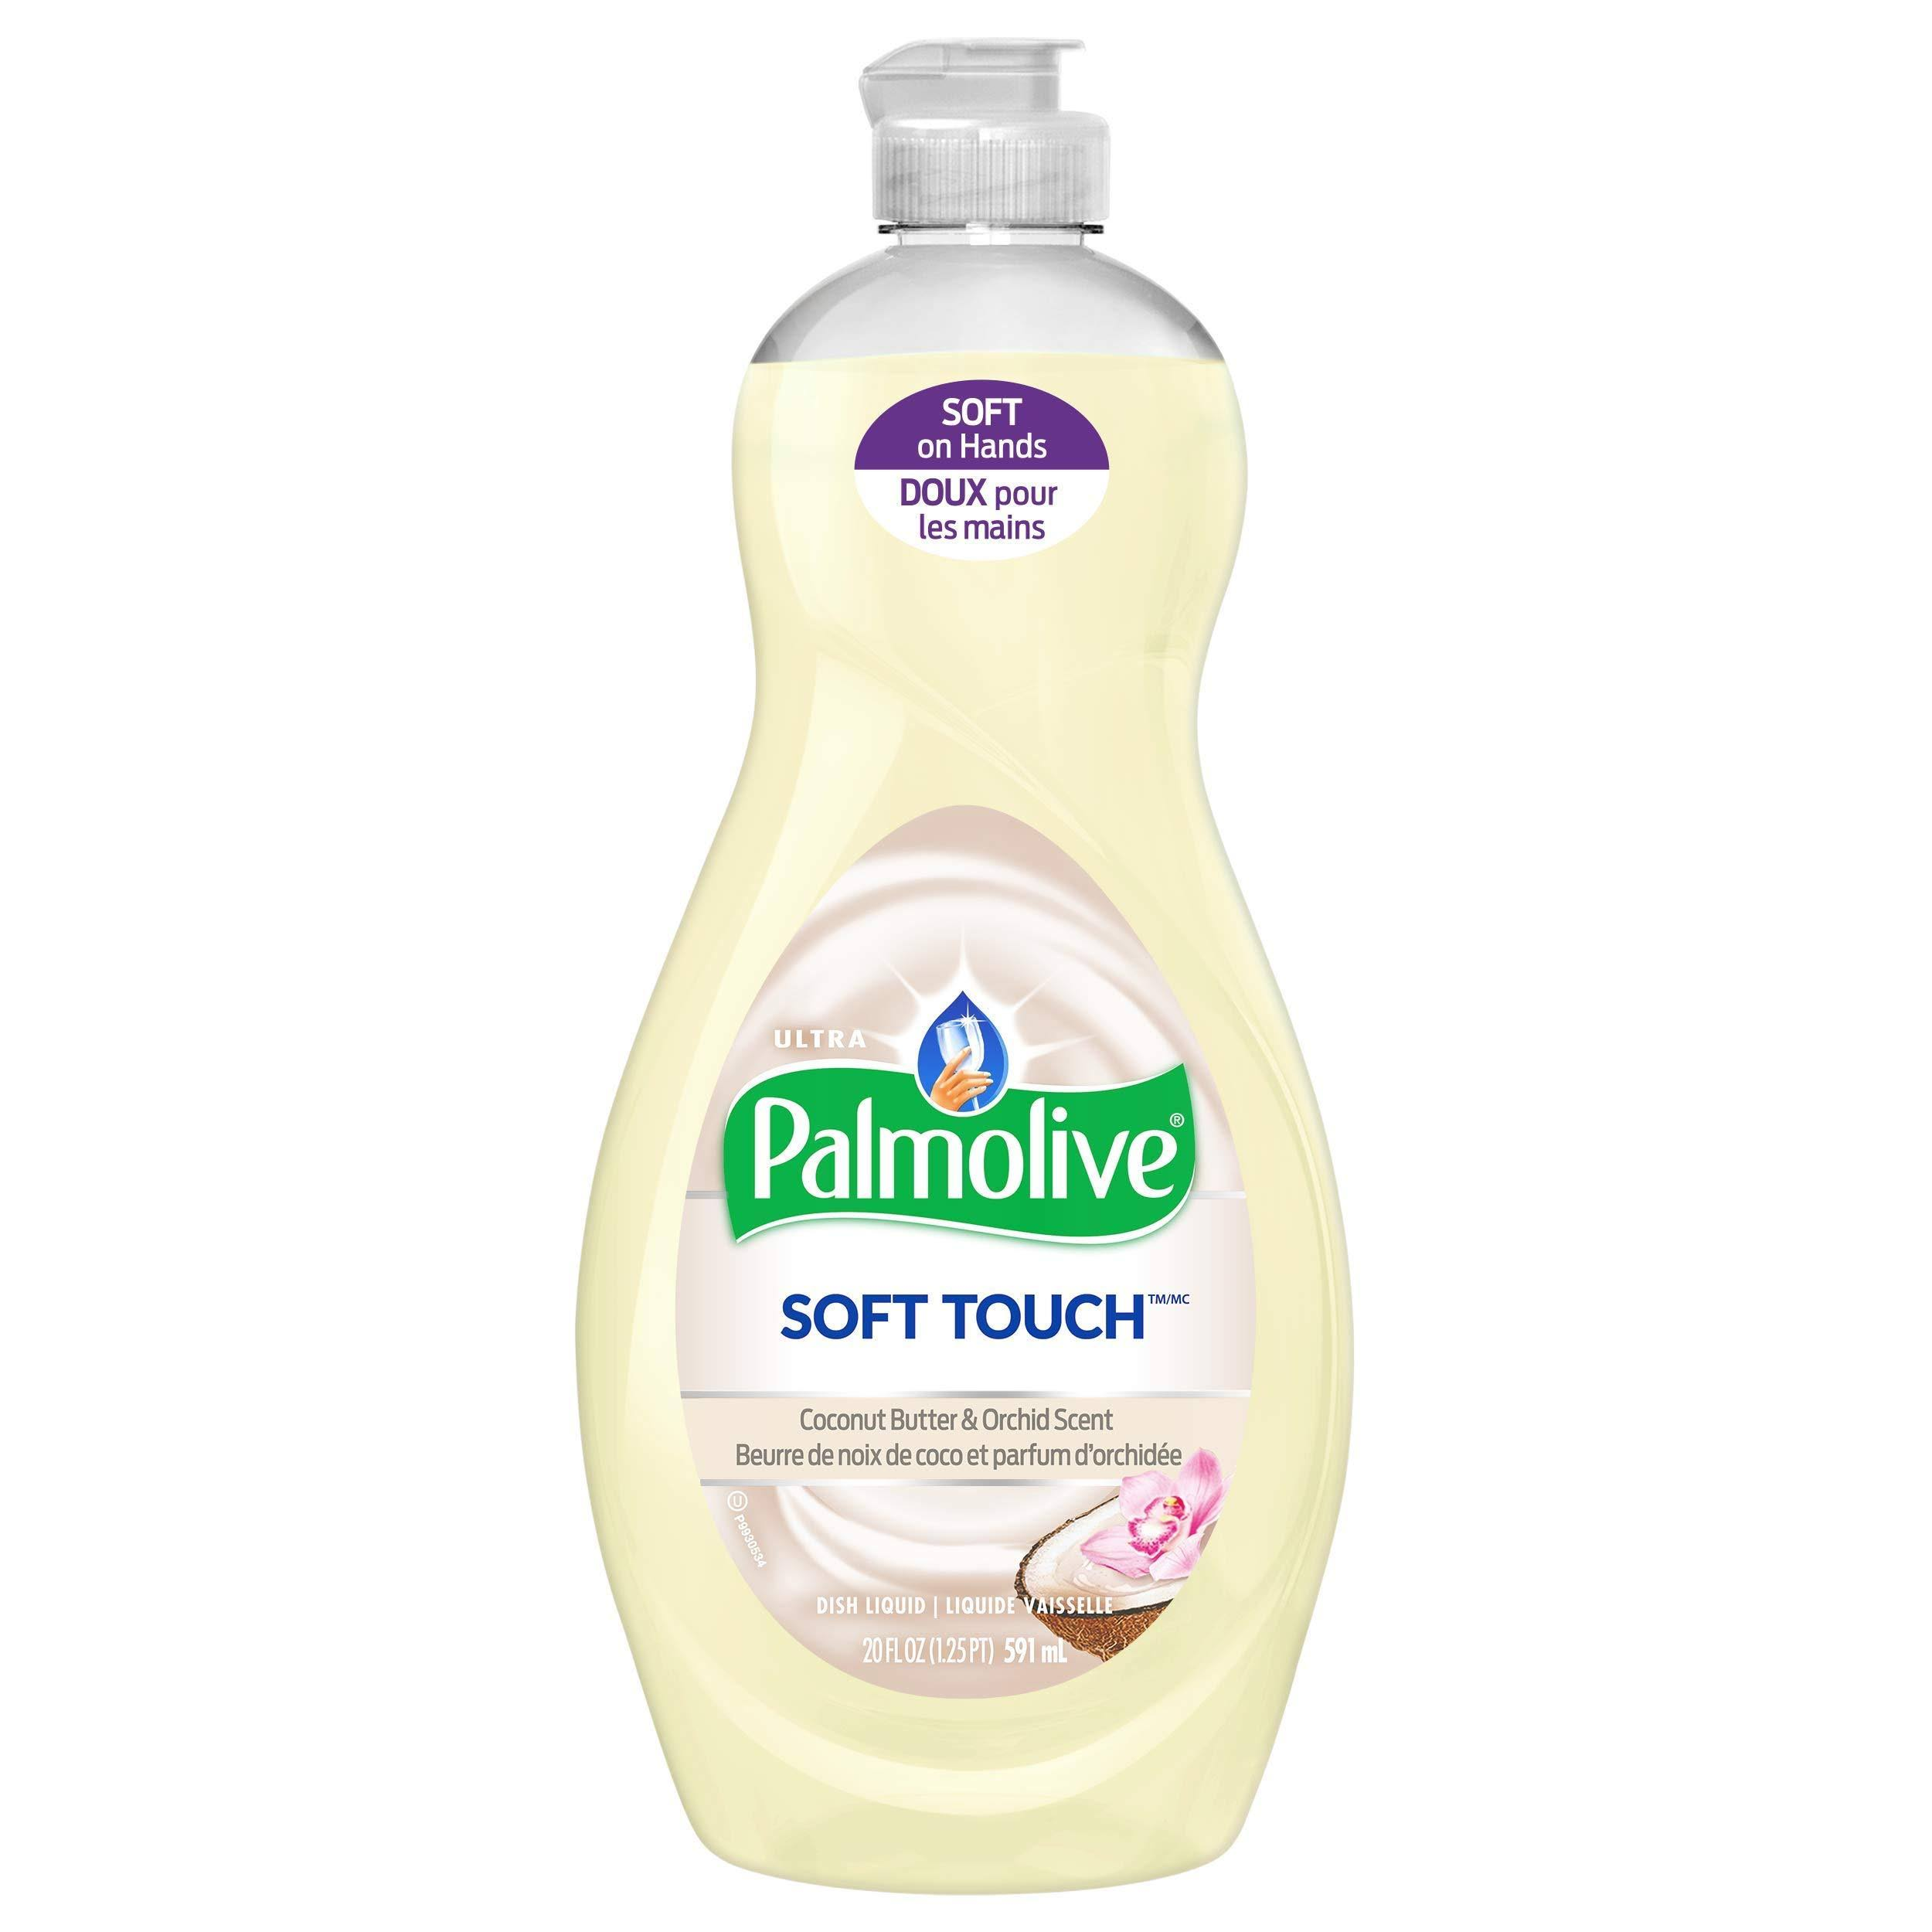 Palmolive Soft Touch Dish Soap - Coconut Butter & Orchid, 591ml